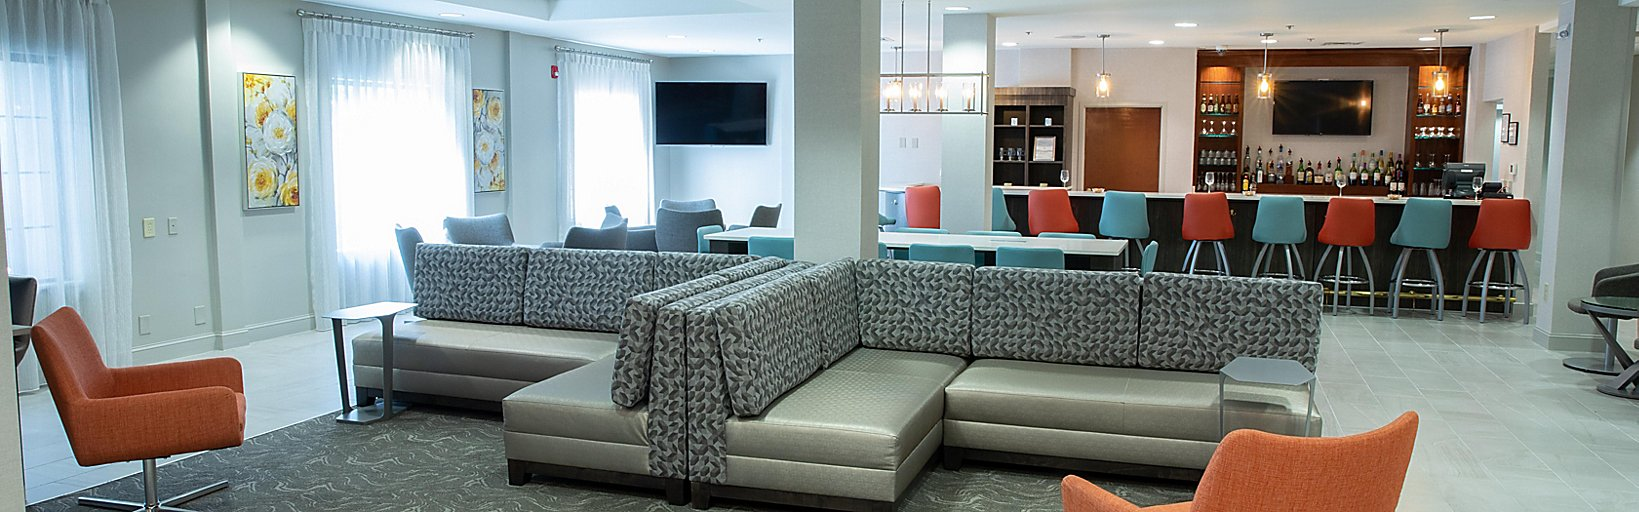 Holiday Inn Hotel Suites Raleigh Cary I 40 At Walnut St Hotel By Ihg